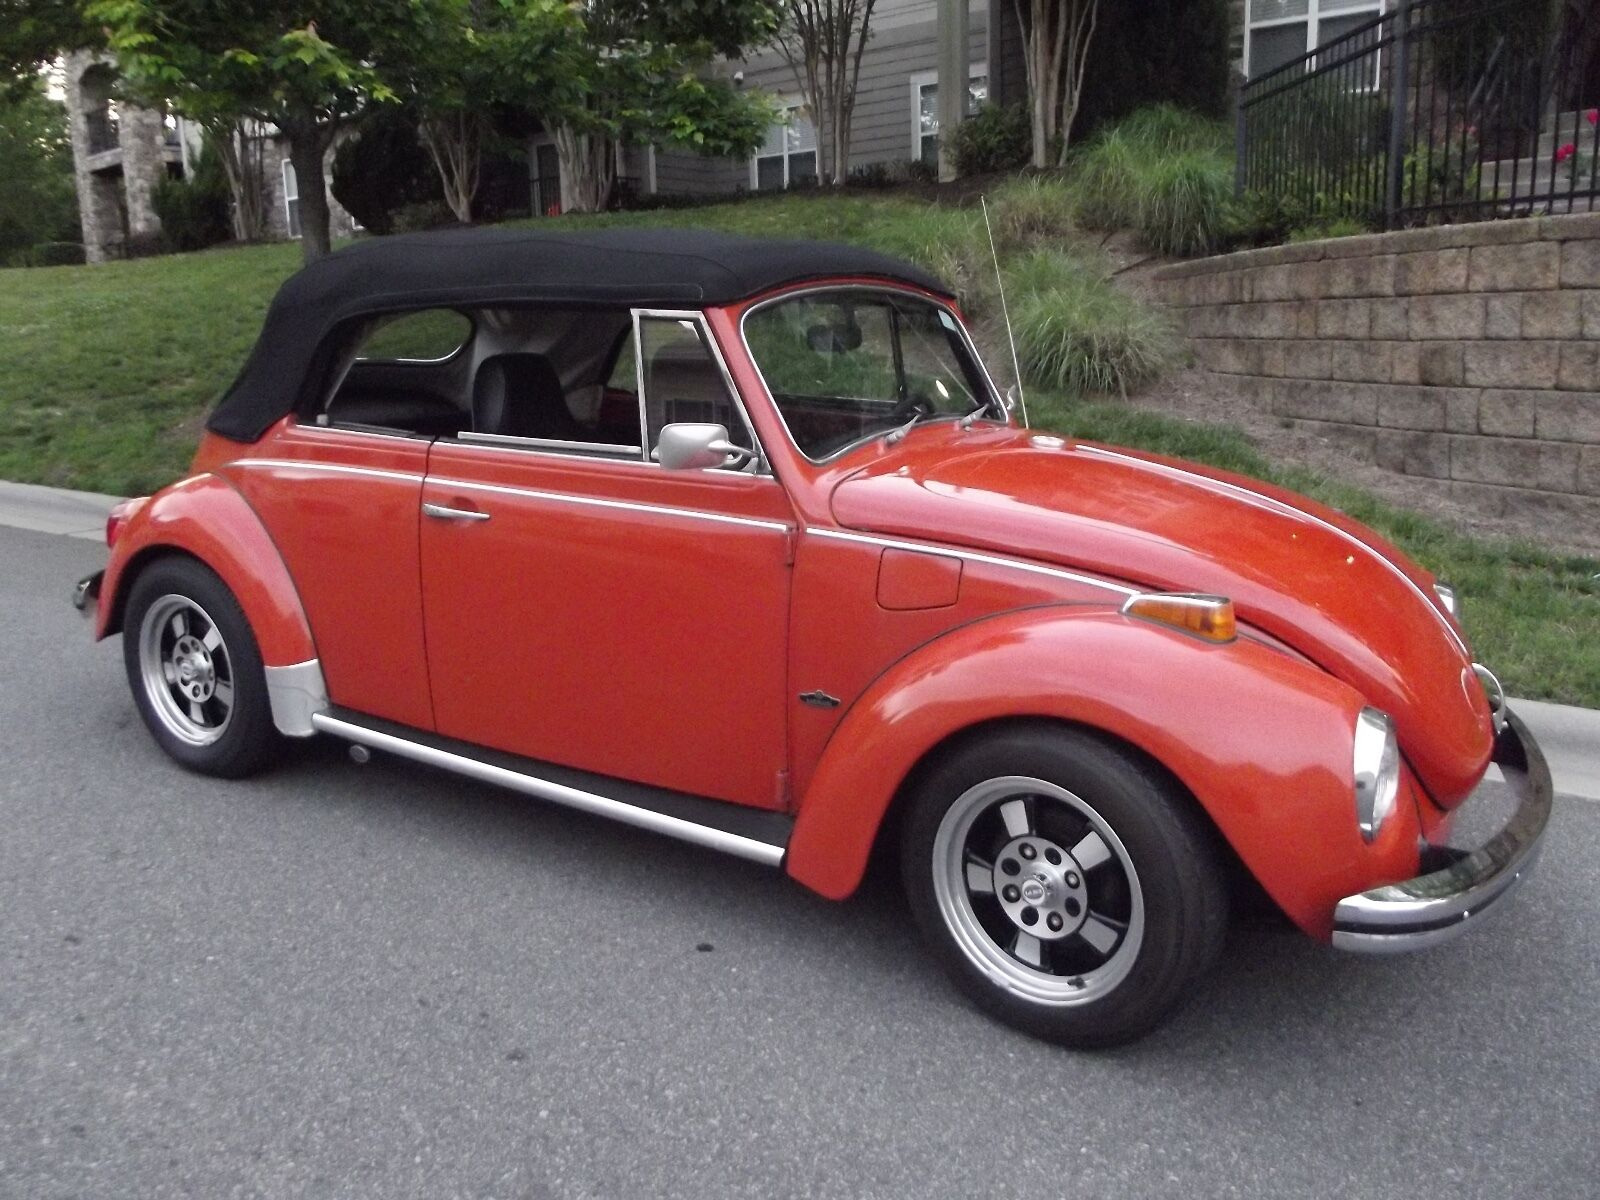 1971 Volkswagen Beetle - Classic Karmann 1971 Classic Convertible Beetle. Karmann Edition with only 60,110 original miles